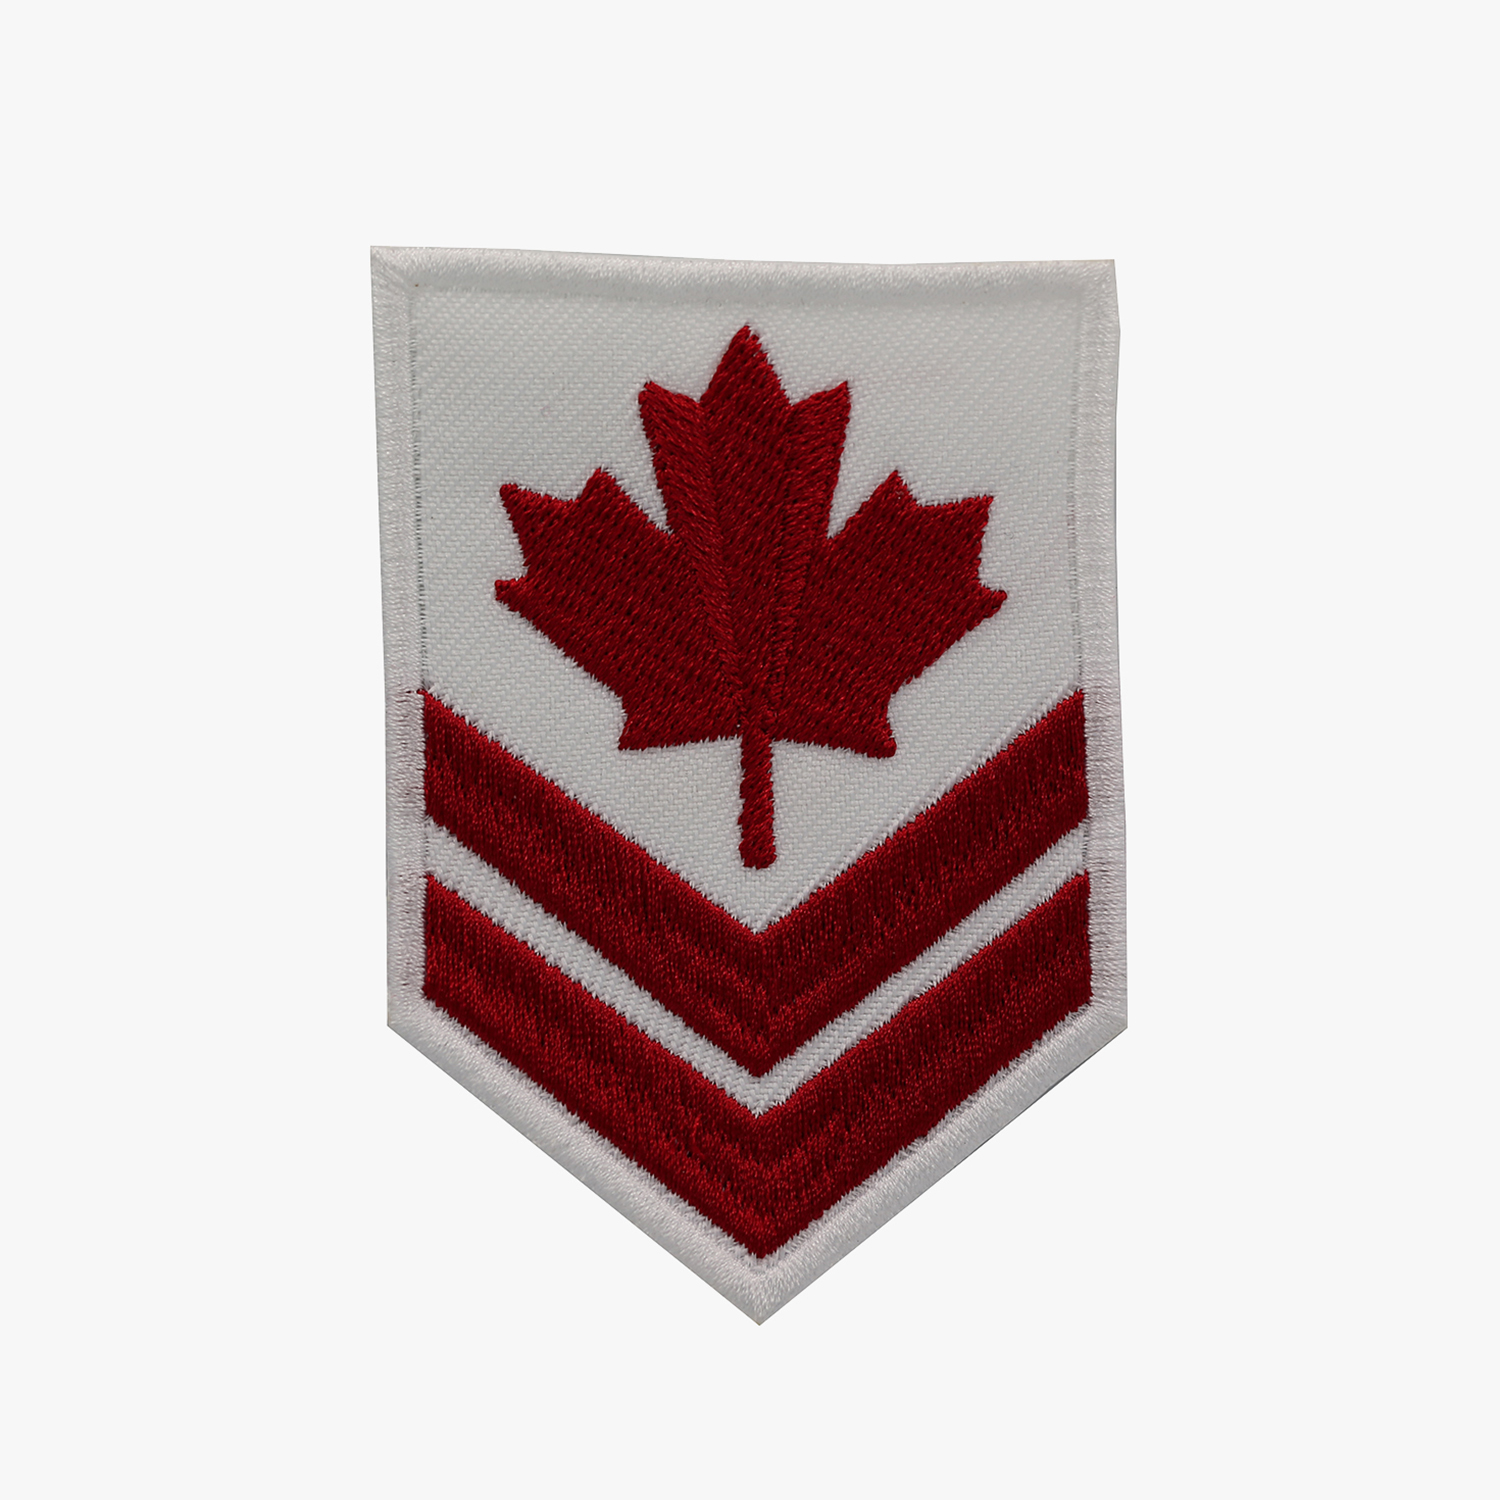 CANADIAN SERGEANT BIKER Embroidered Patch